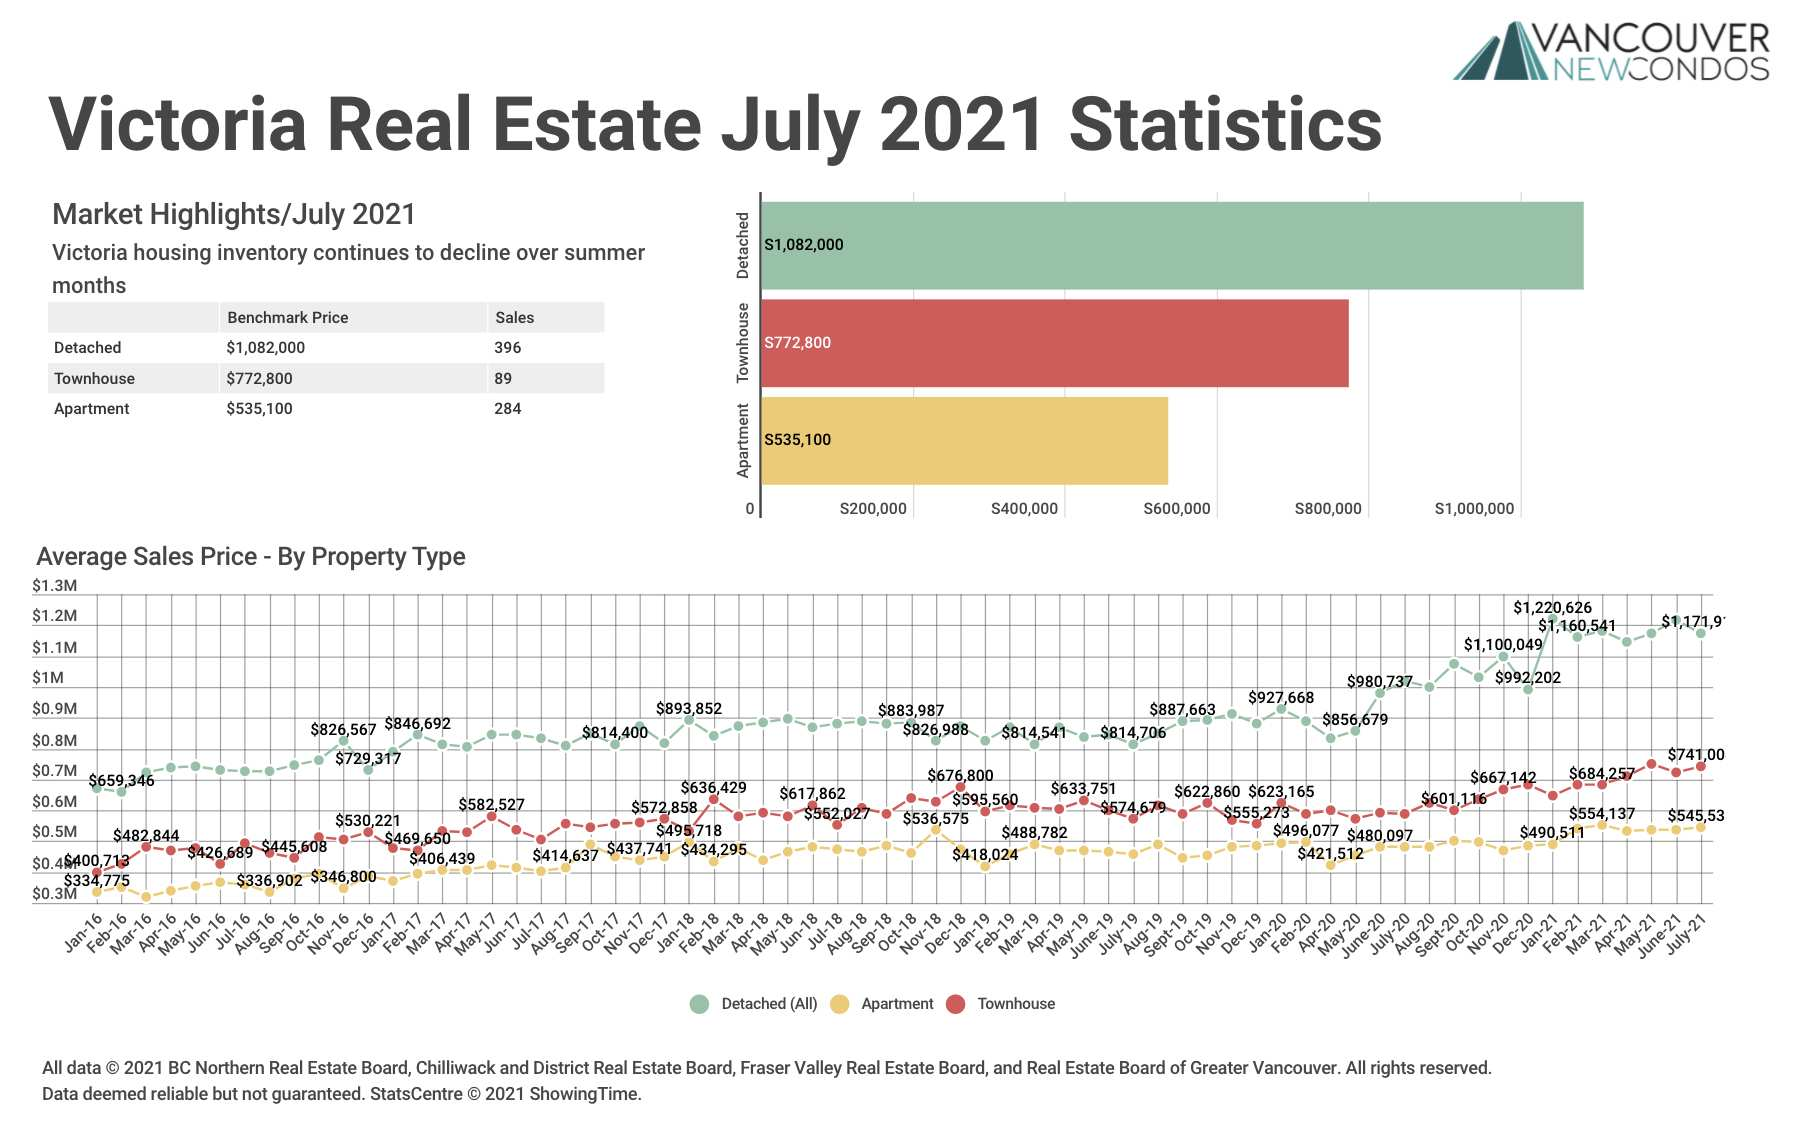 VREB July 21 Stats Graph